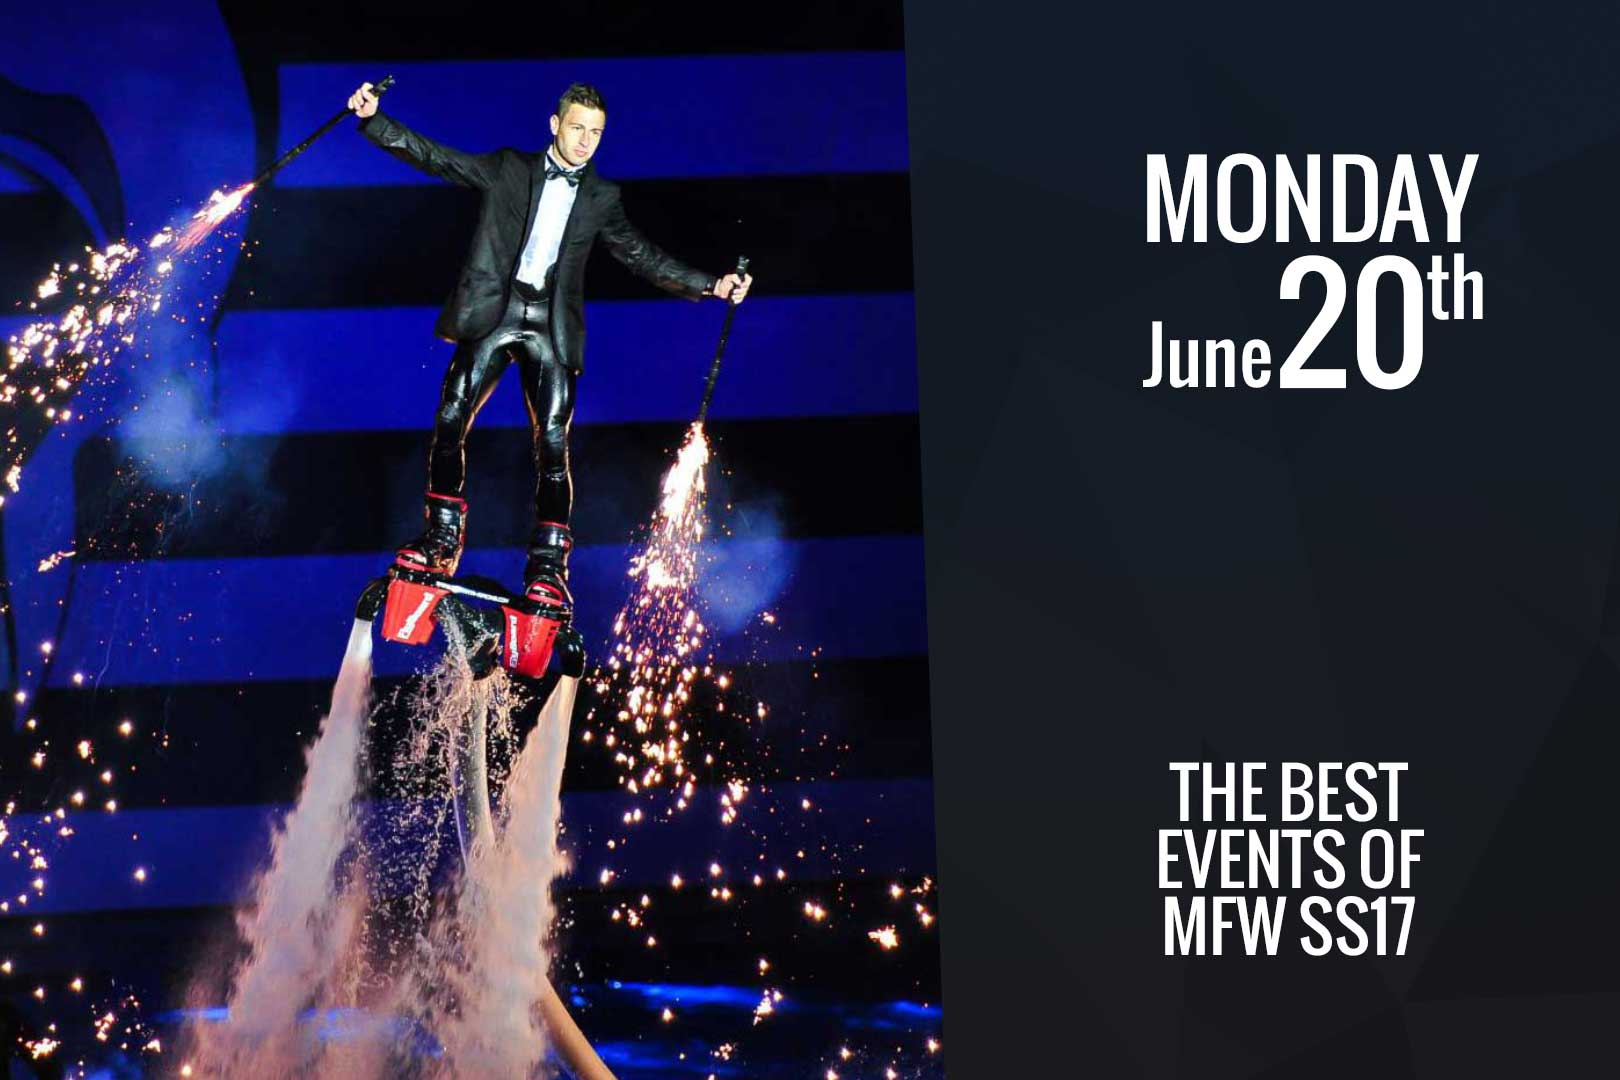 Monday June 20th: the best events